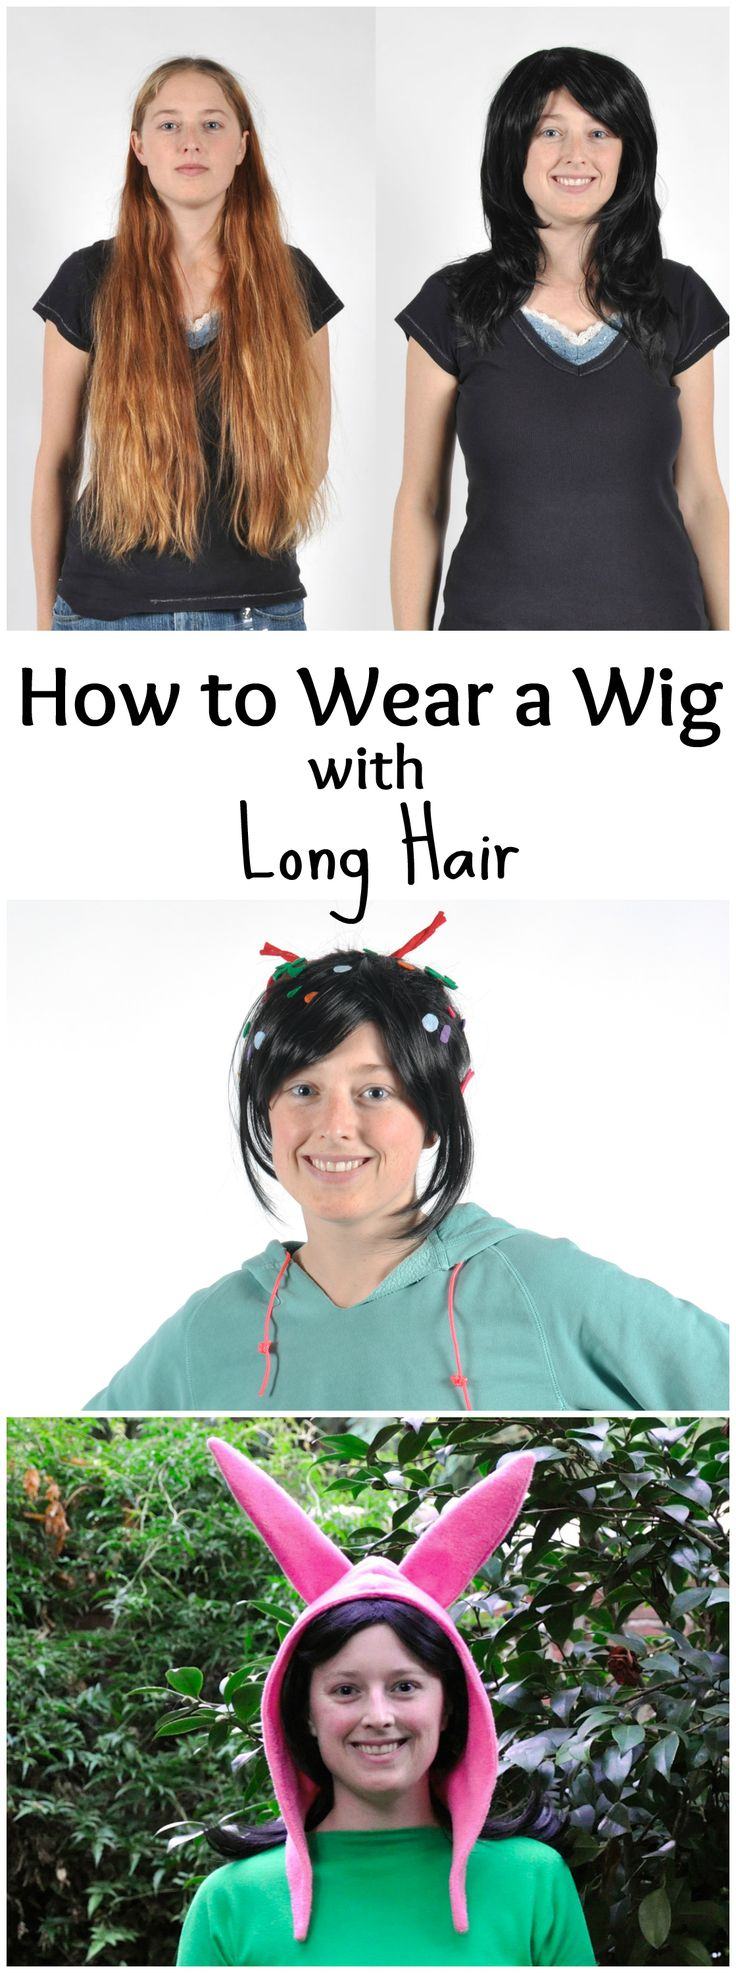 Wigs are awesome, but they can be hard to wear with long hair. This tutorial will show you how to tuck and hide all that long hair so you can wear a wig with long hair! *As shown by my picture, wigs make you happy!Just a warning, if your wig is tight (small) and/or you have thick hair, this still might not work with your hair, but try it out to see :)